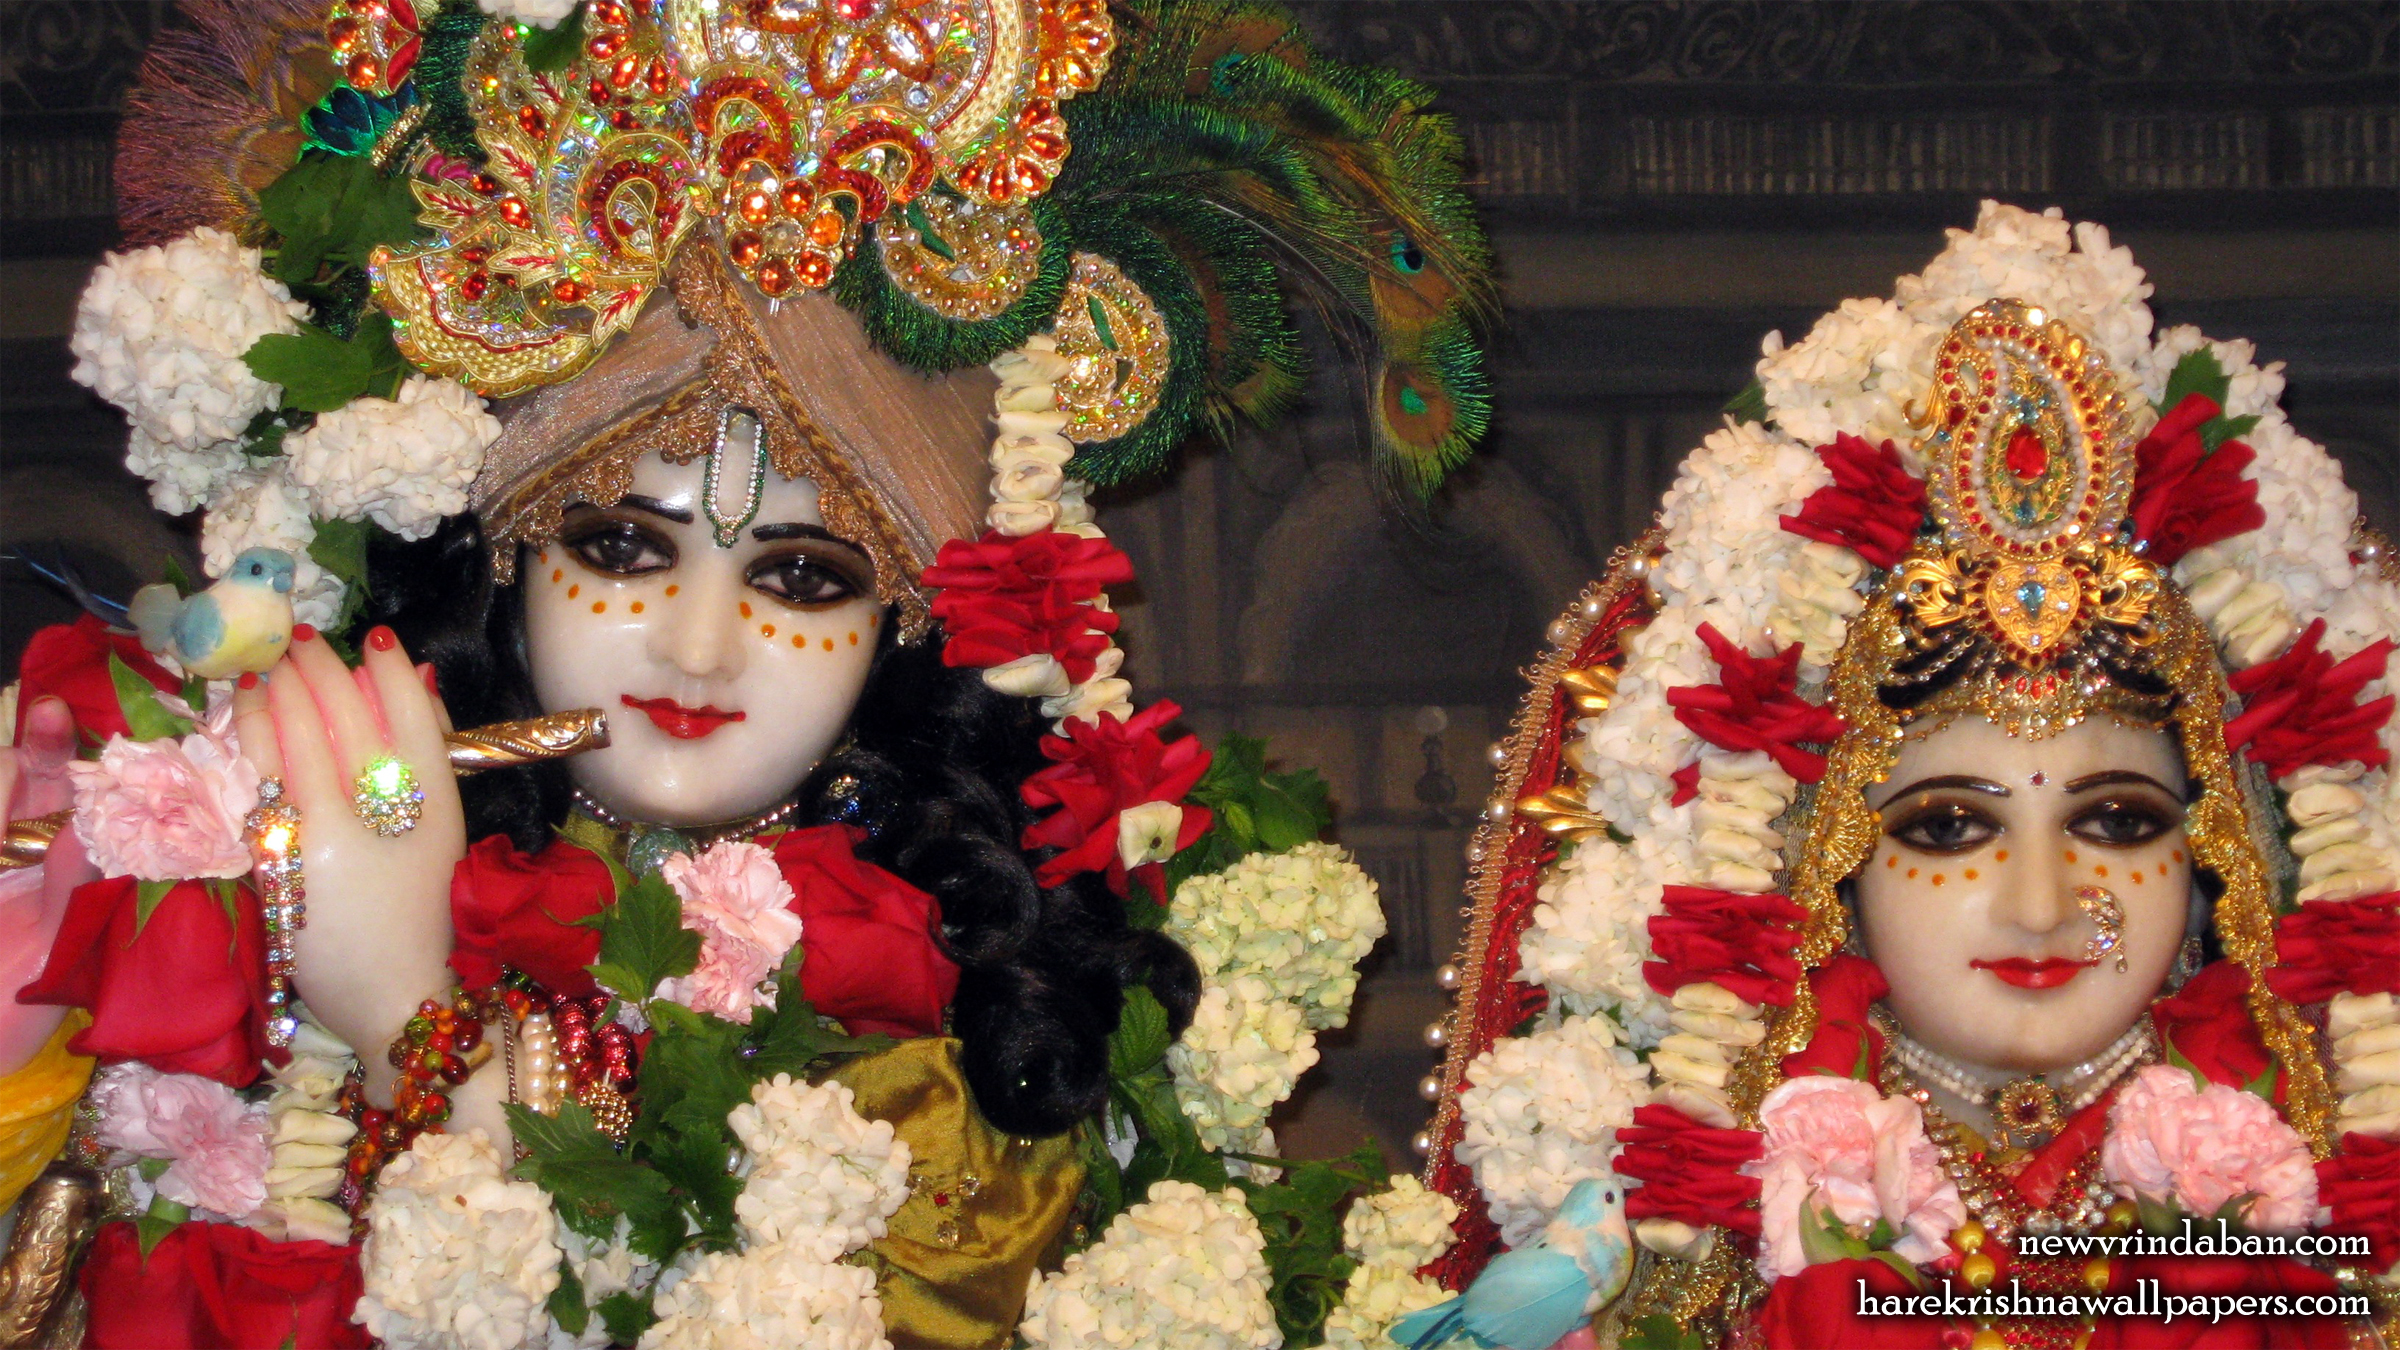 Sri Sri Radha Vrindavana Chandra Close up Wallpaper (003) Size 2400x1350 Download